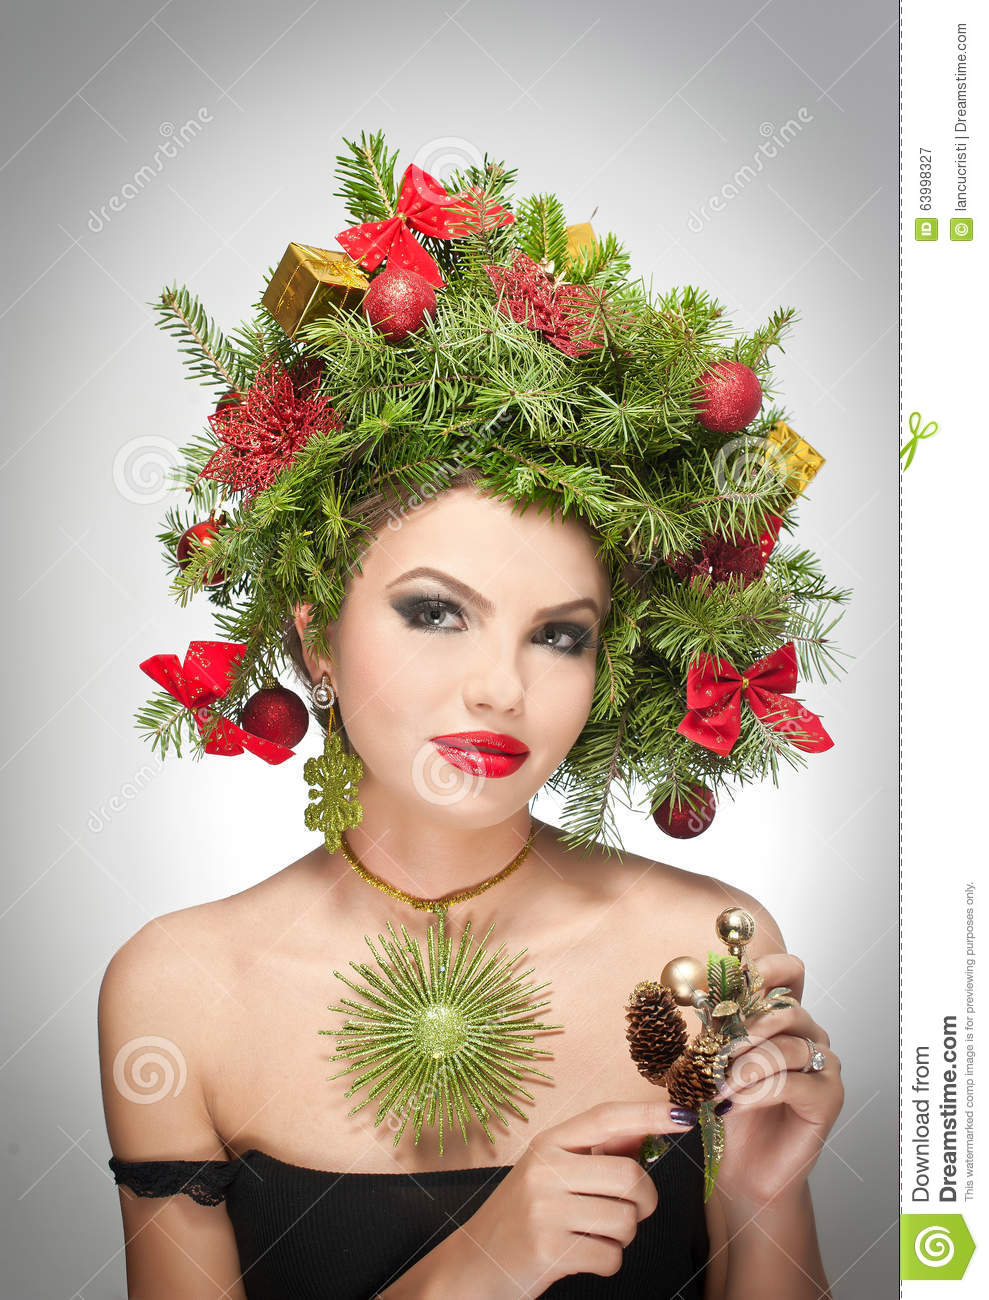 Beautiful Creative Xmas Makeup And Hair Style Indoor Shoot Beauty Fashion Model Girl Winter